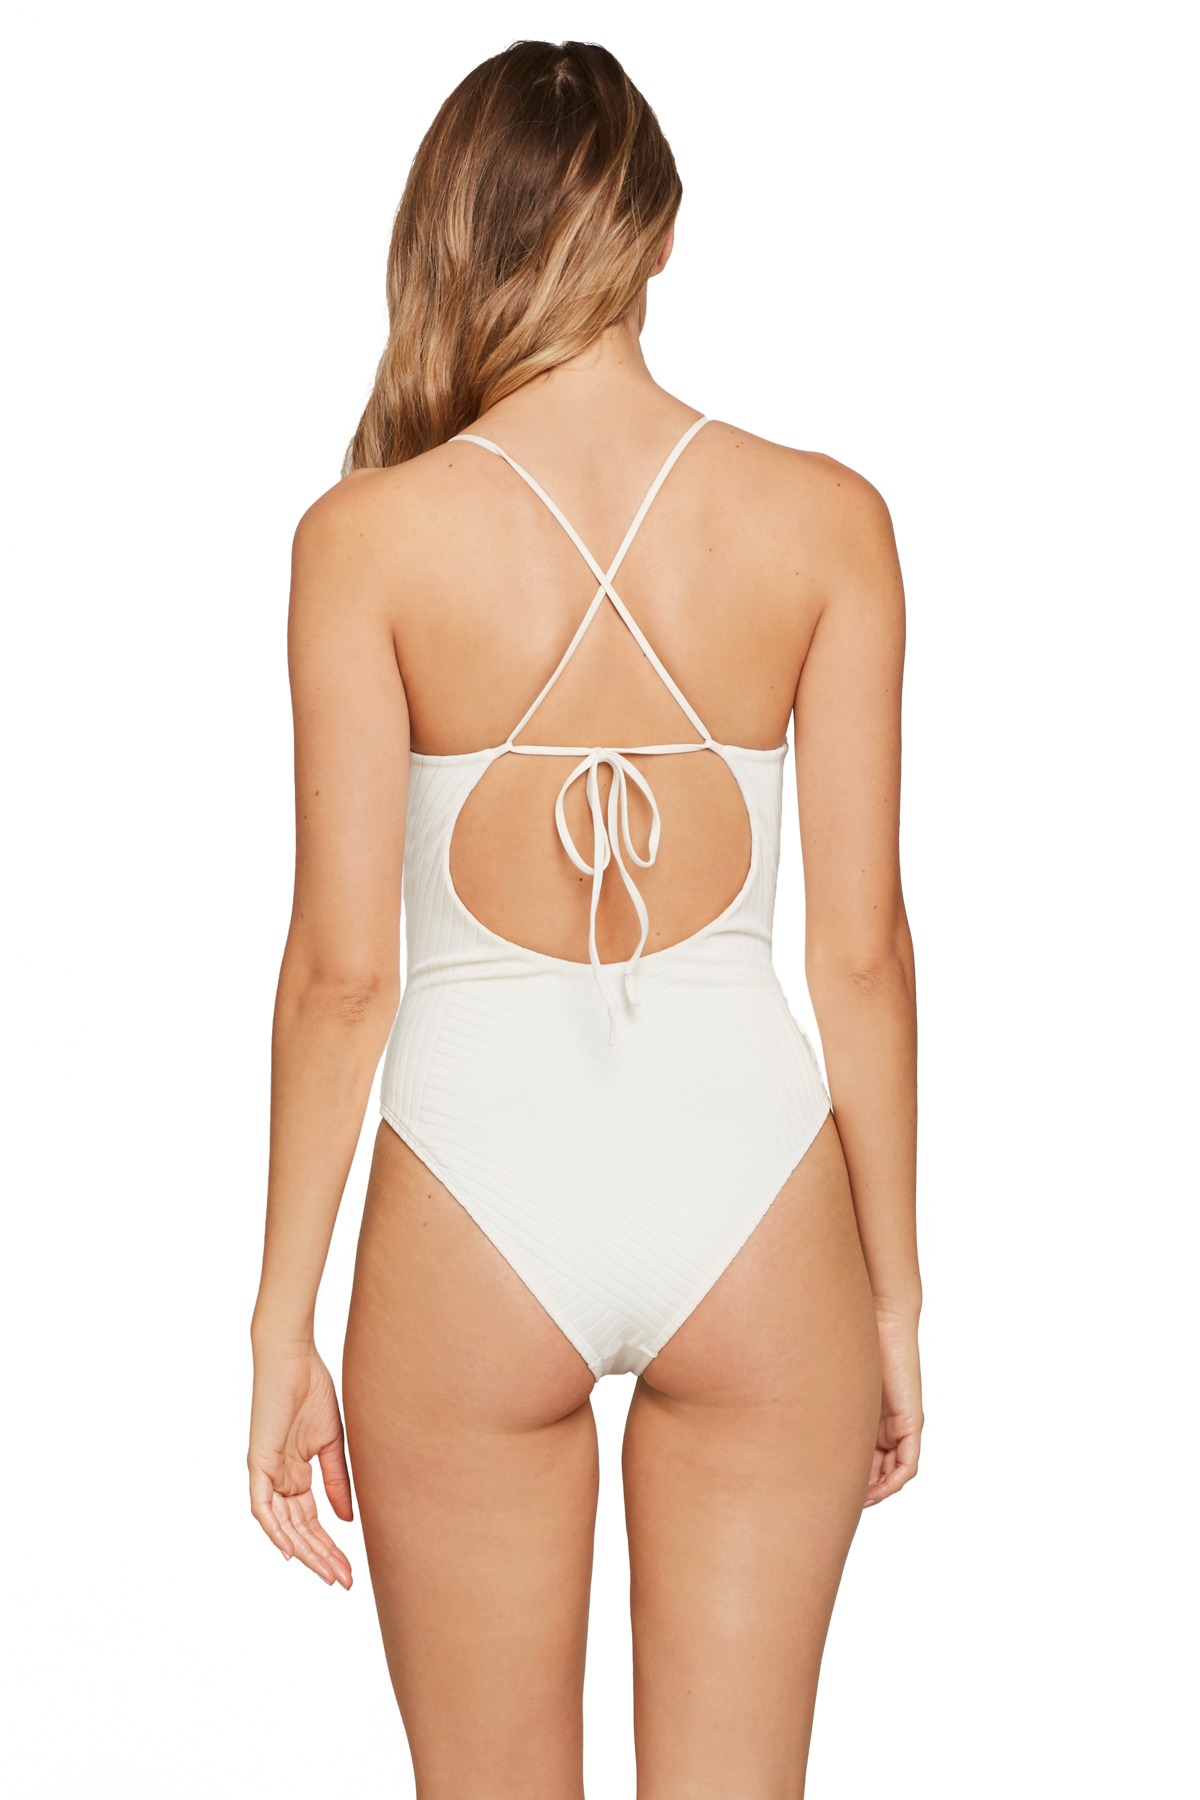 Miss Molly Lingerie Strap One Piece Swimsuit - Cream 2